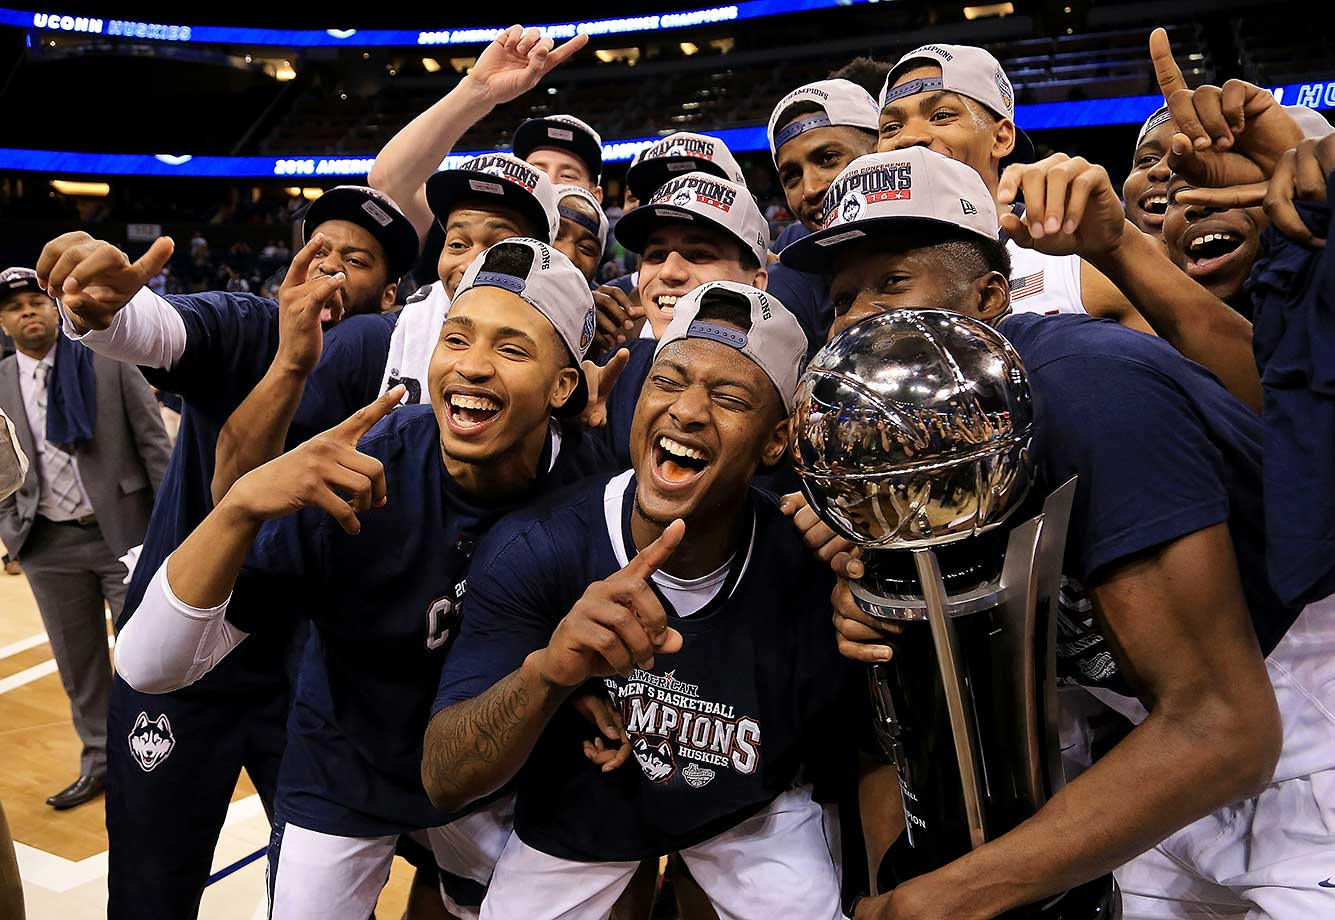 Here are some of the images that caught our eye on Selection Sunday, starting with a UConn team that rode the strength of a quadruple overtime win over Cincinnati all the way to the AAC title.